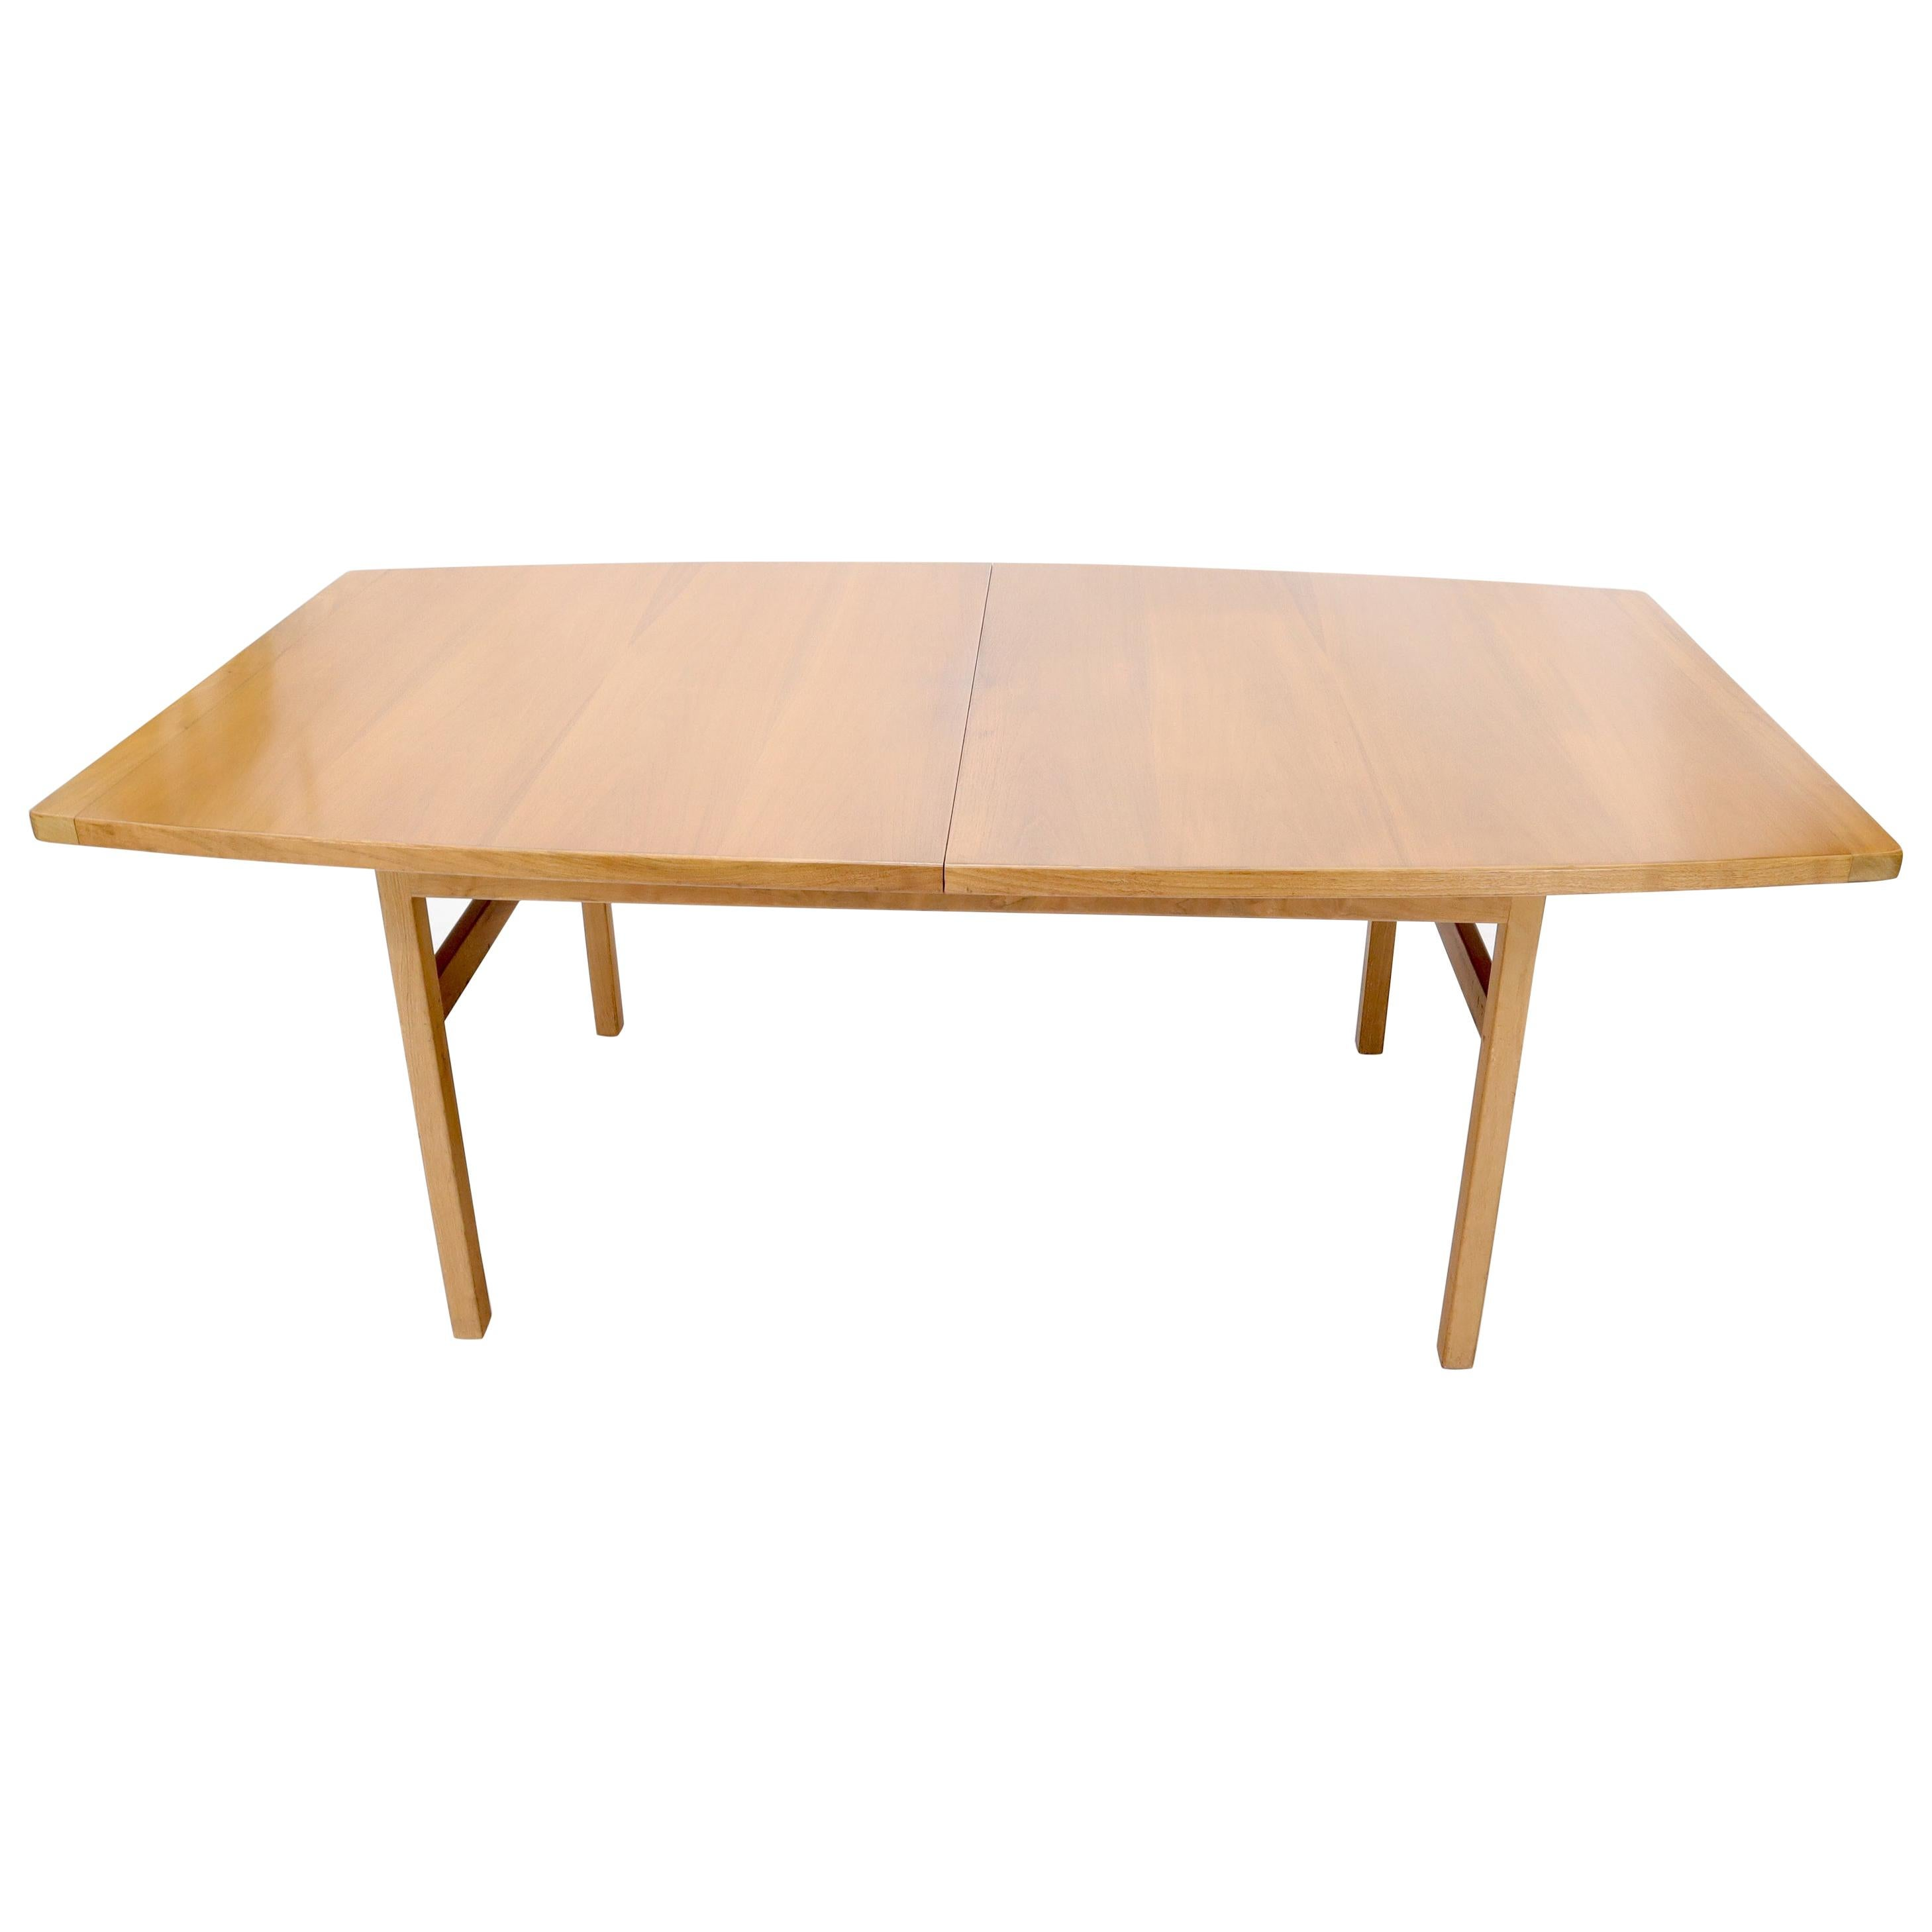 Jens Risom Walnut Gate Leg Dining Table with Extensions Boards